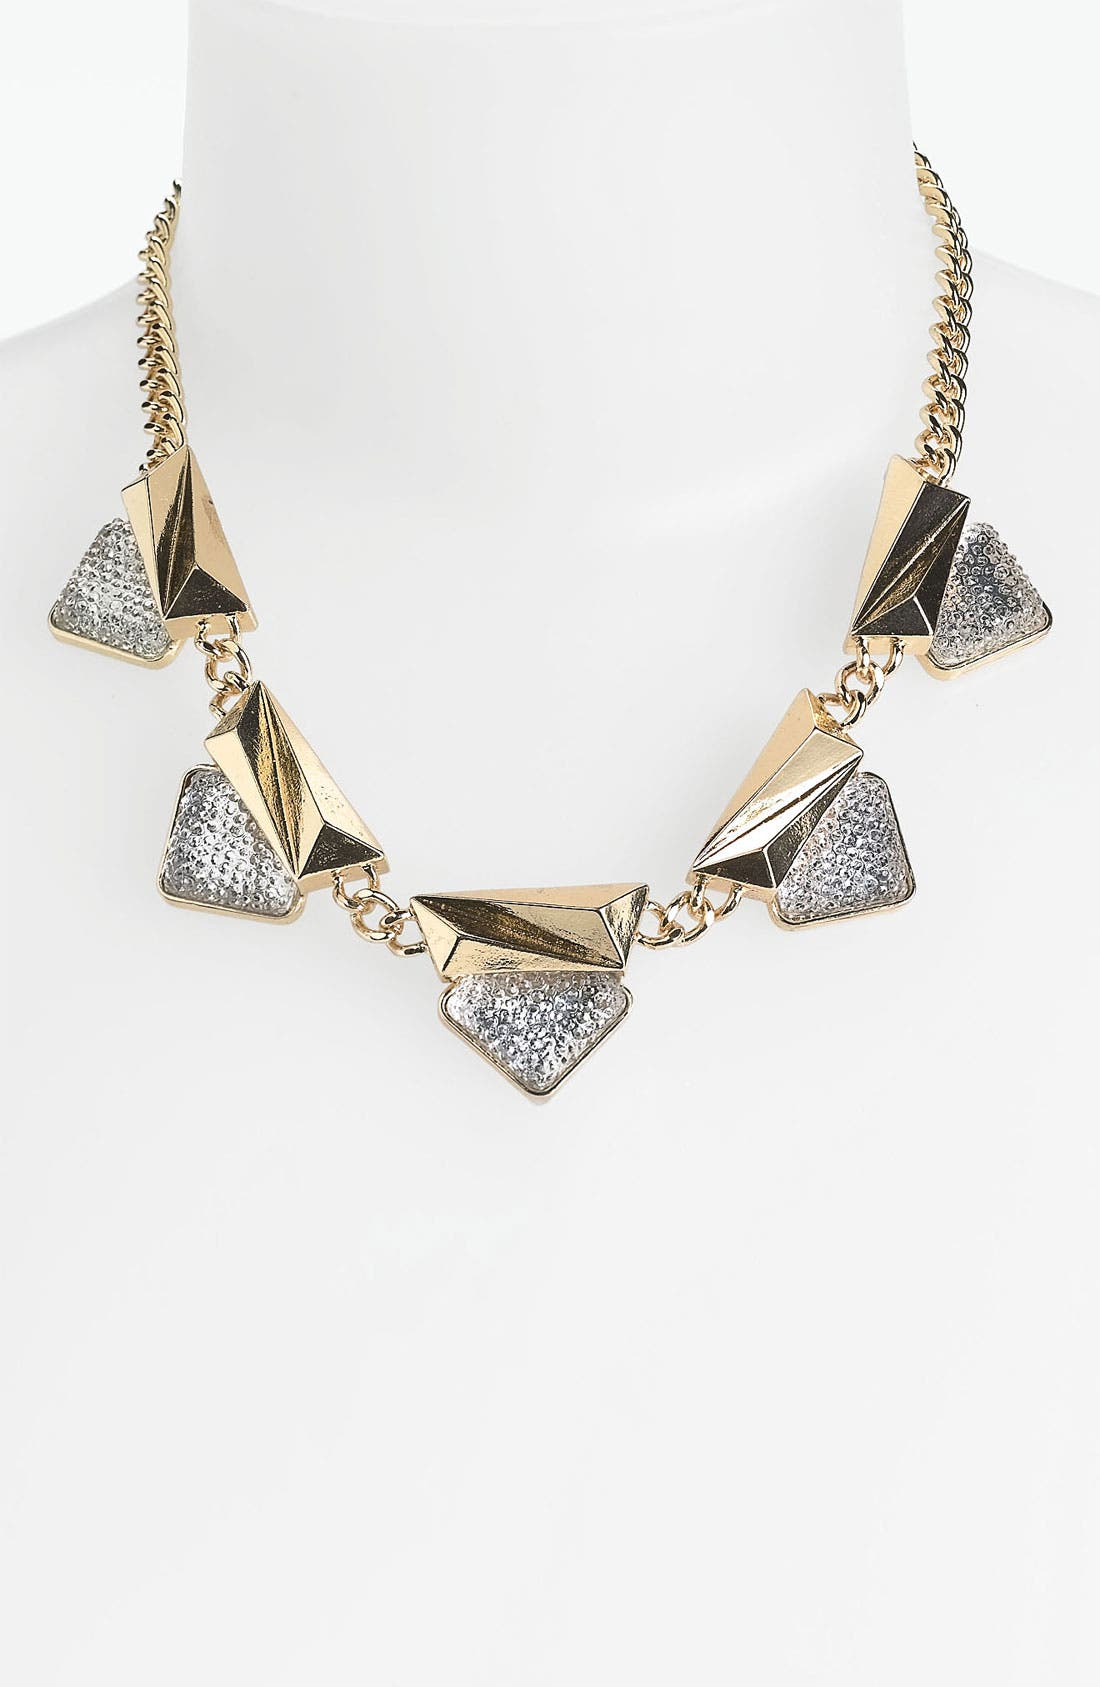 Main Image - Spring Street Design Group 'Drama' Necklace